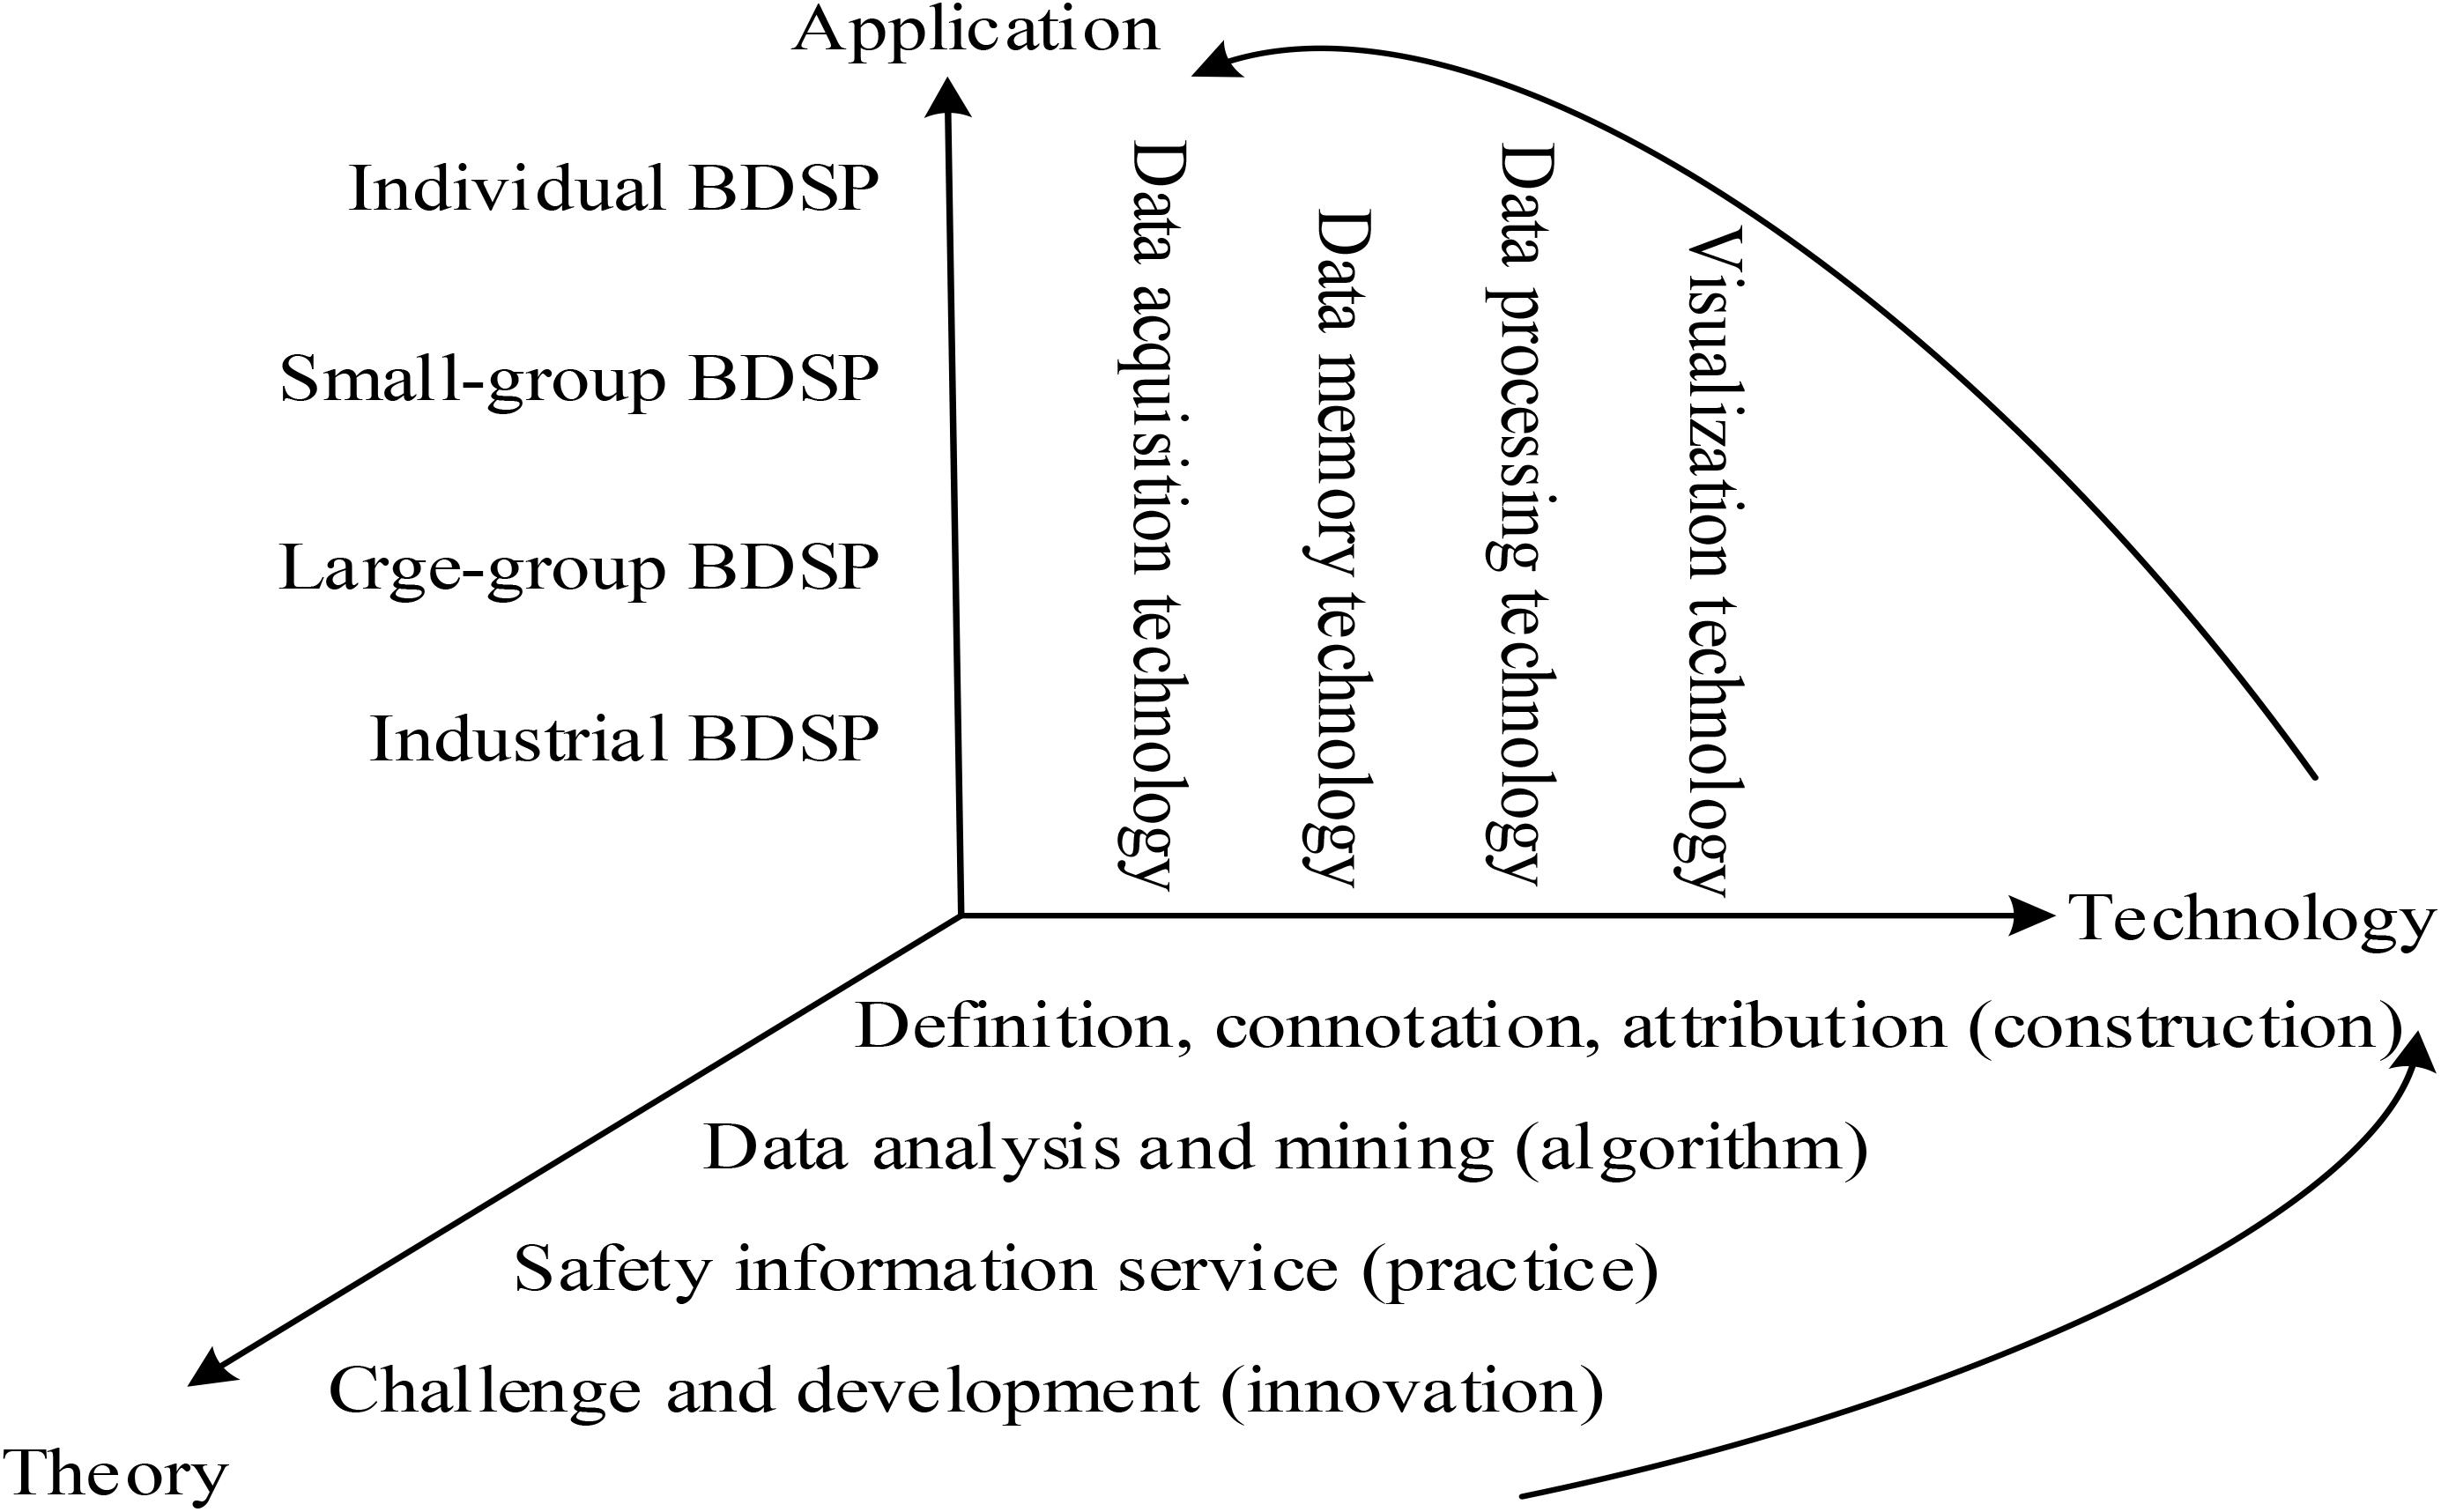 Frontiers | Principles, Approaches and Challenges of Applying Big